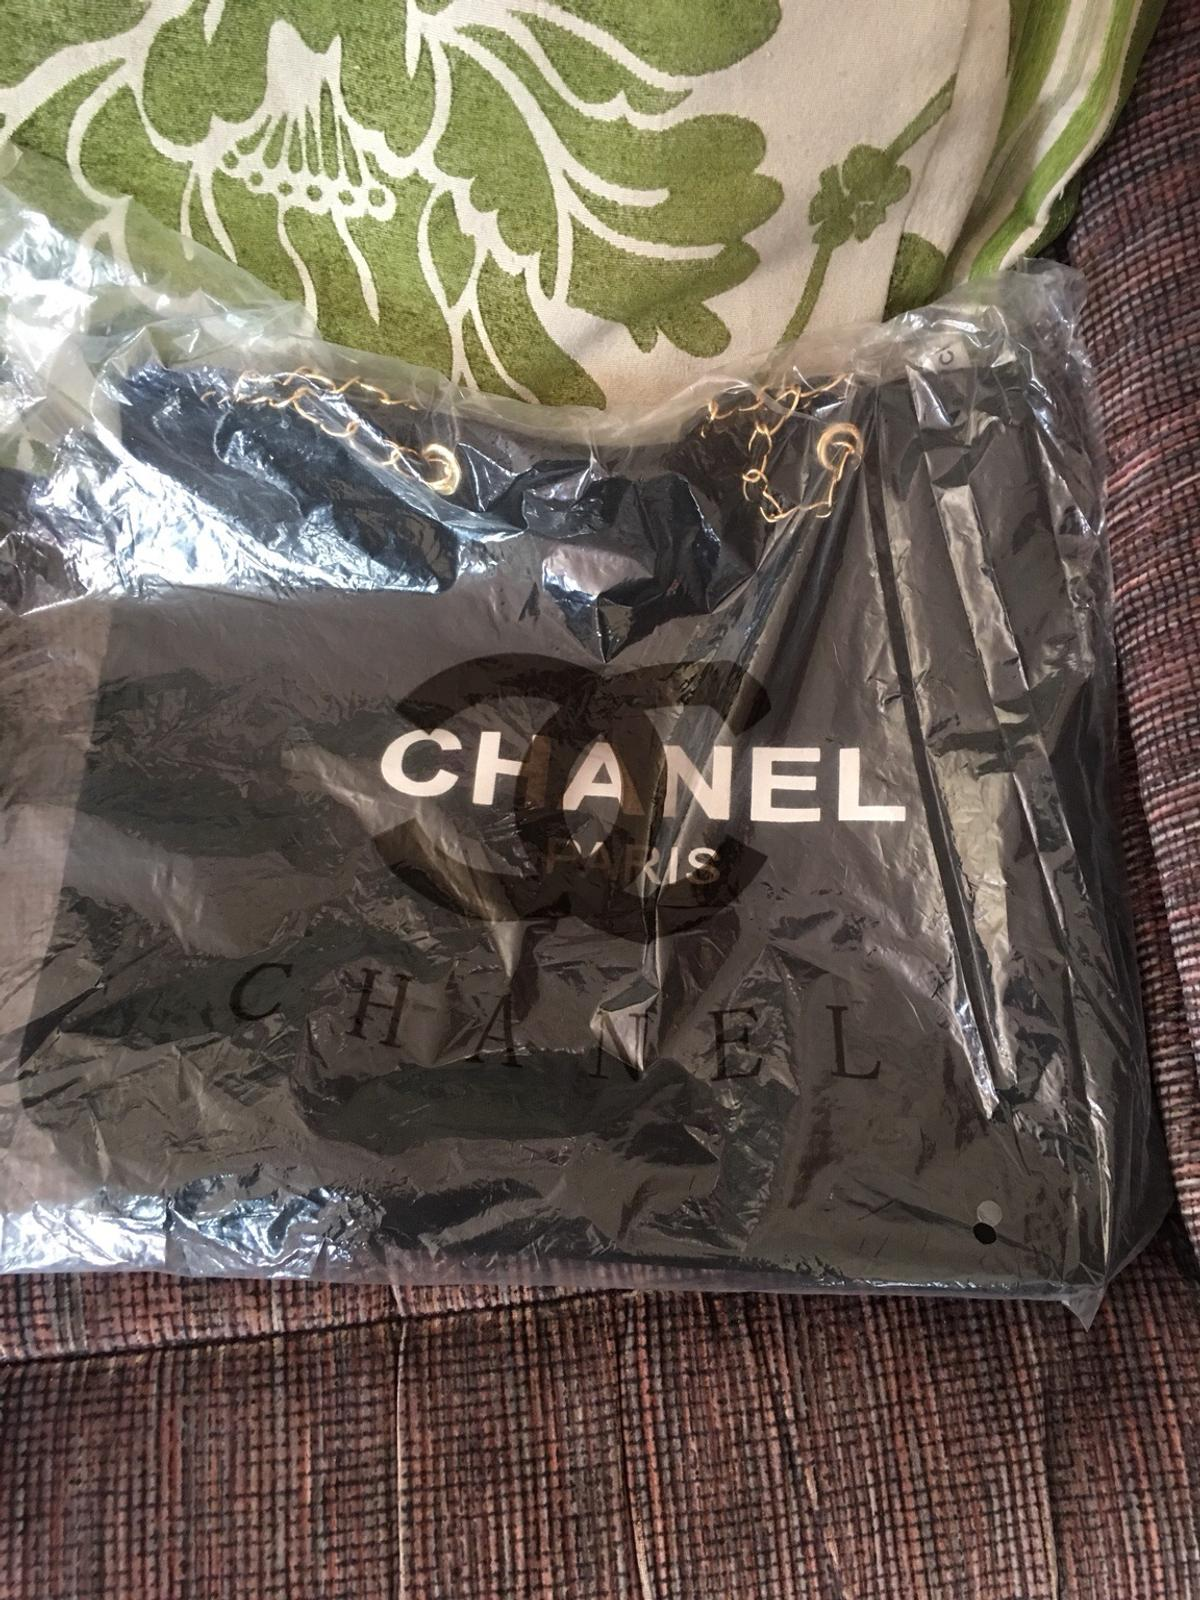 afcdd639e5b9 Description. NEW Chanel Black Canvas Shopper Tote Bag with Gold Chain This  is. Authentic VIP Gift given to ...